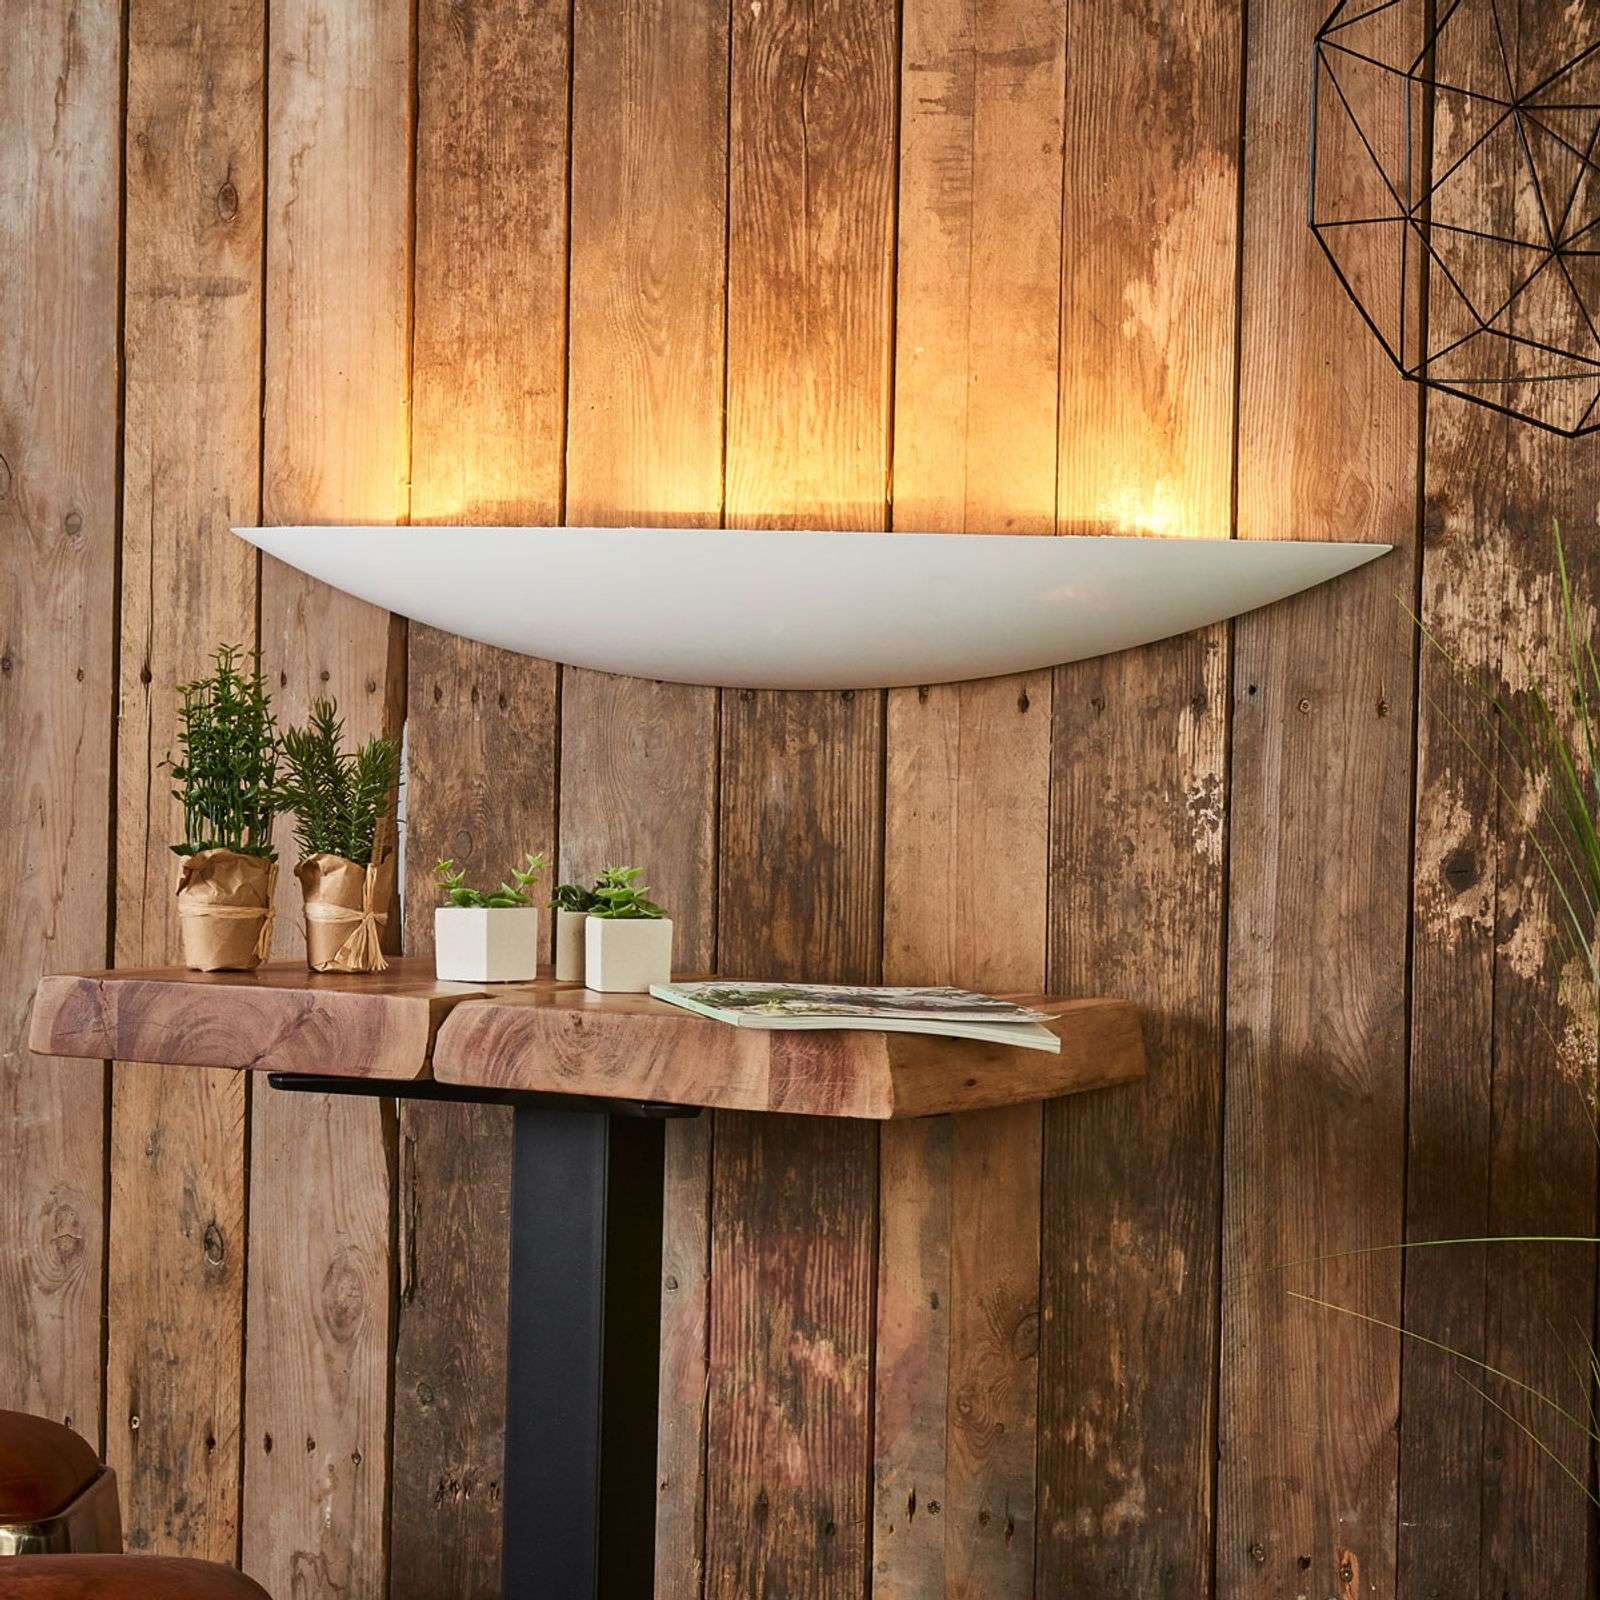 Grote gips wandlamp Tommi in wit-9613070-06